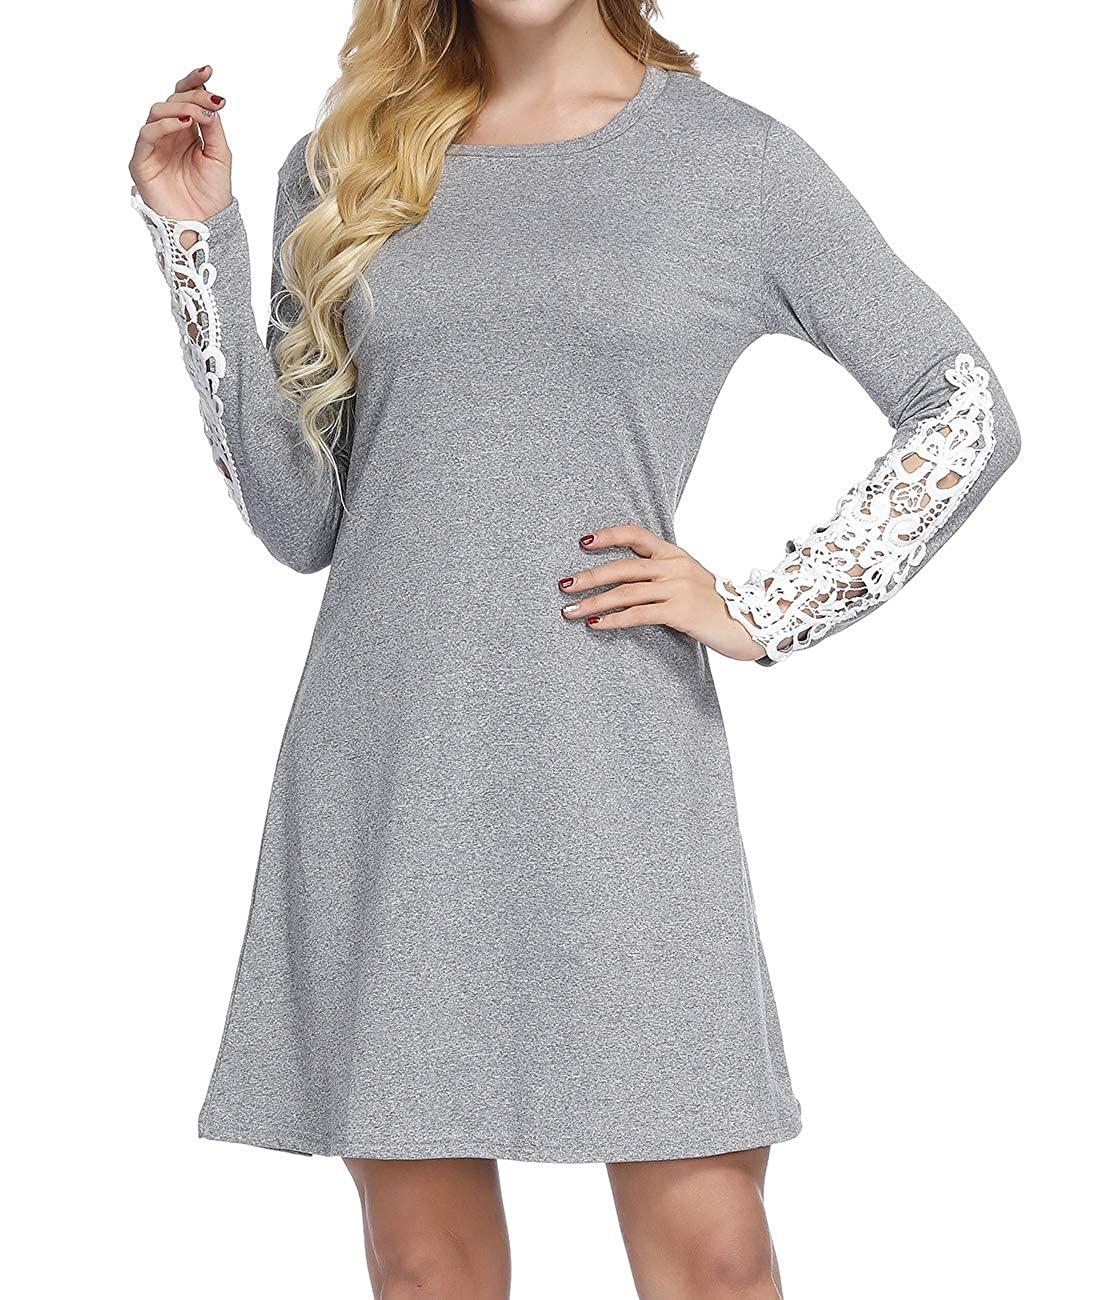 e0cf50be19f Long Sleeve Tunic Dress Casual Loose Swing T Shirt Dress with Lace Patches  for Women. Cute Tunic Dress This long sleeve tunic dress perfect for women